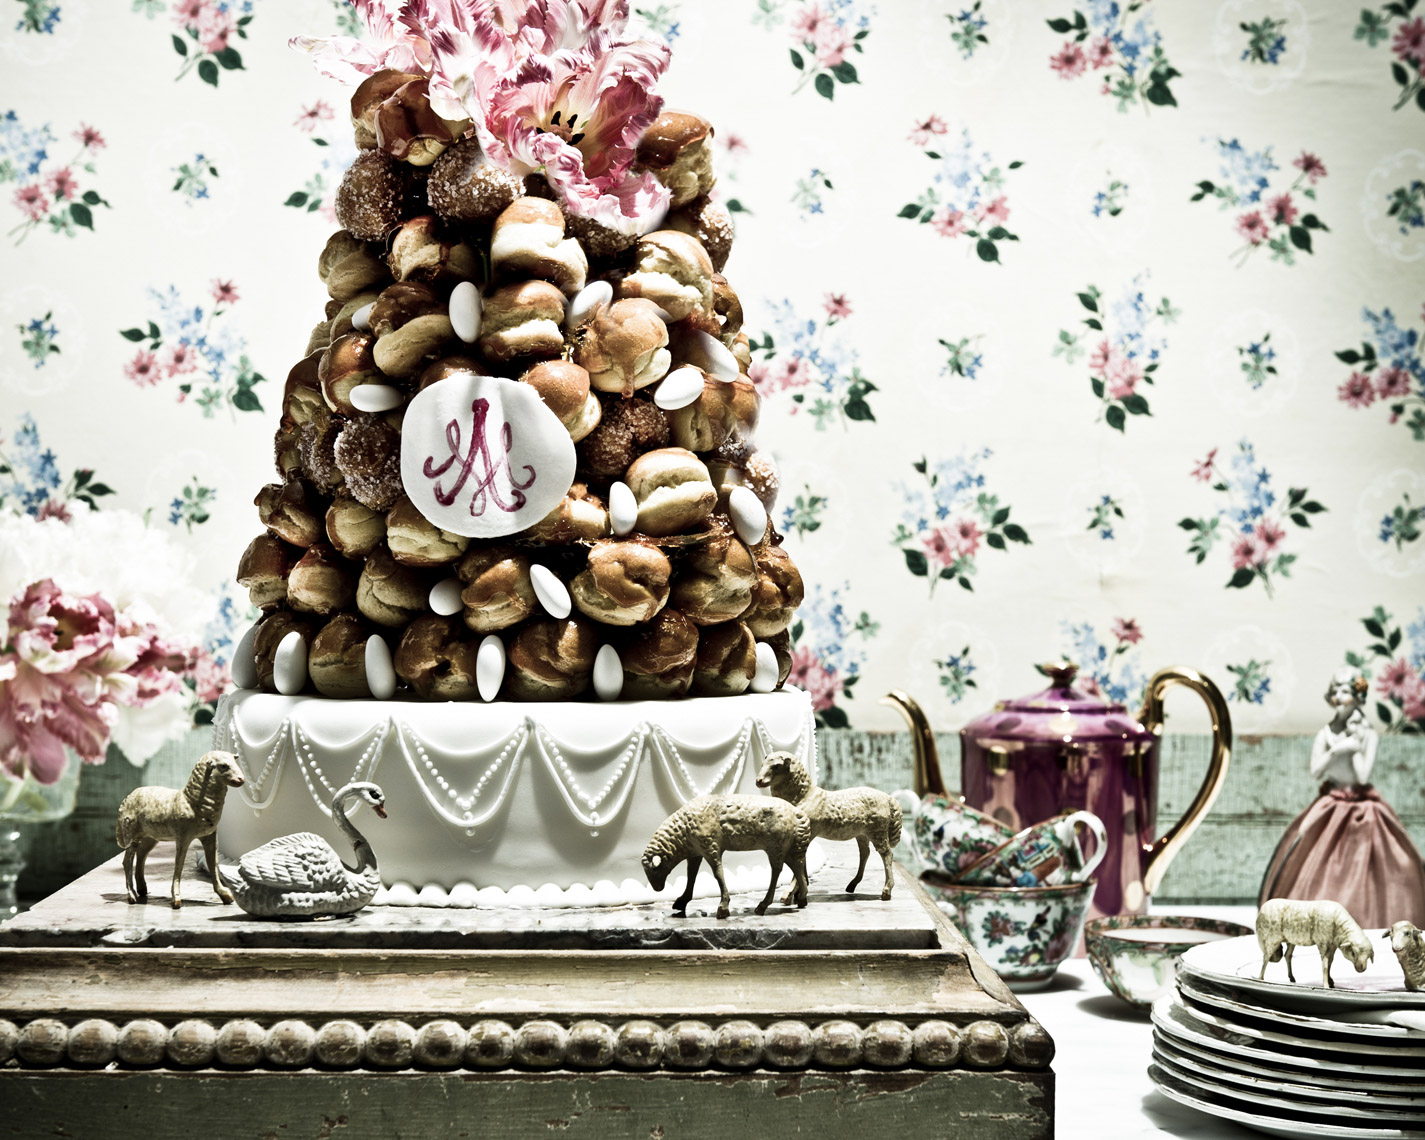 food stylist in Dallas - croquembouche - French Pastry - personal work photographed by Manny Rodriguez Photographer